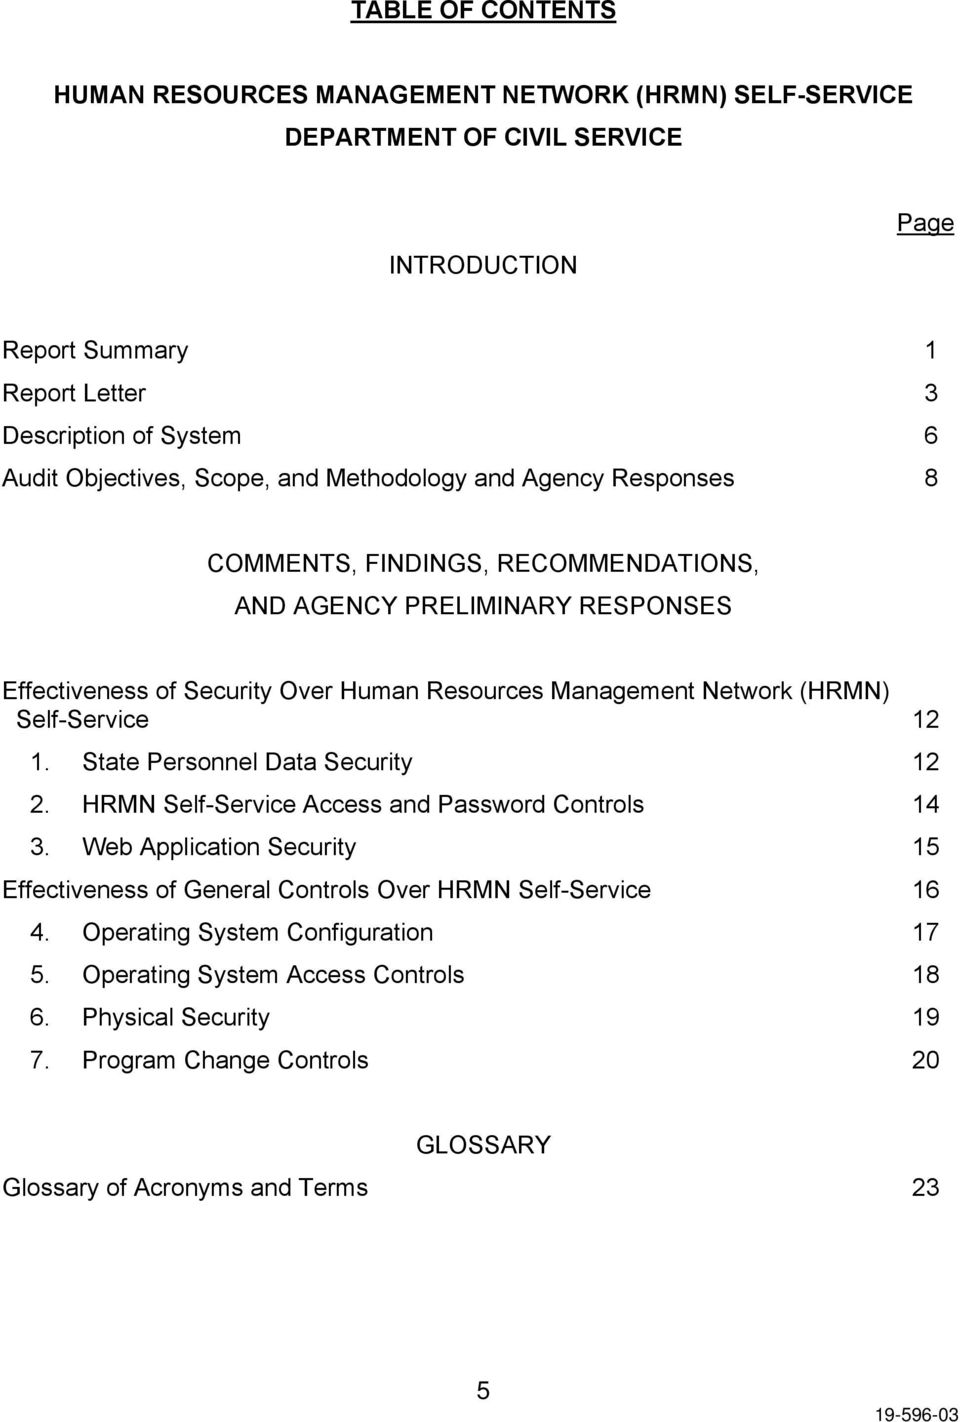 Network (HRMN) Self-Service 12 1. State Personnel Data Security 12 2. HRMN Self-Service Access and Password Controls 14 3.